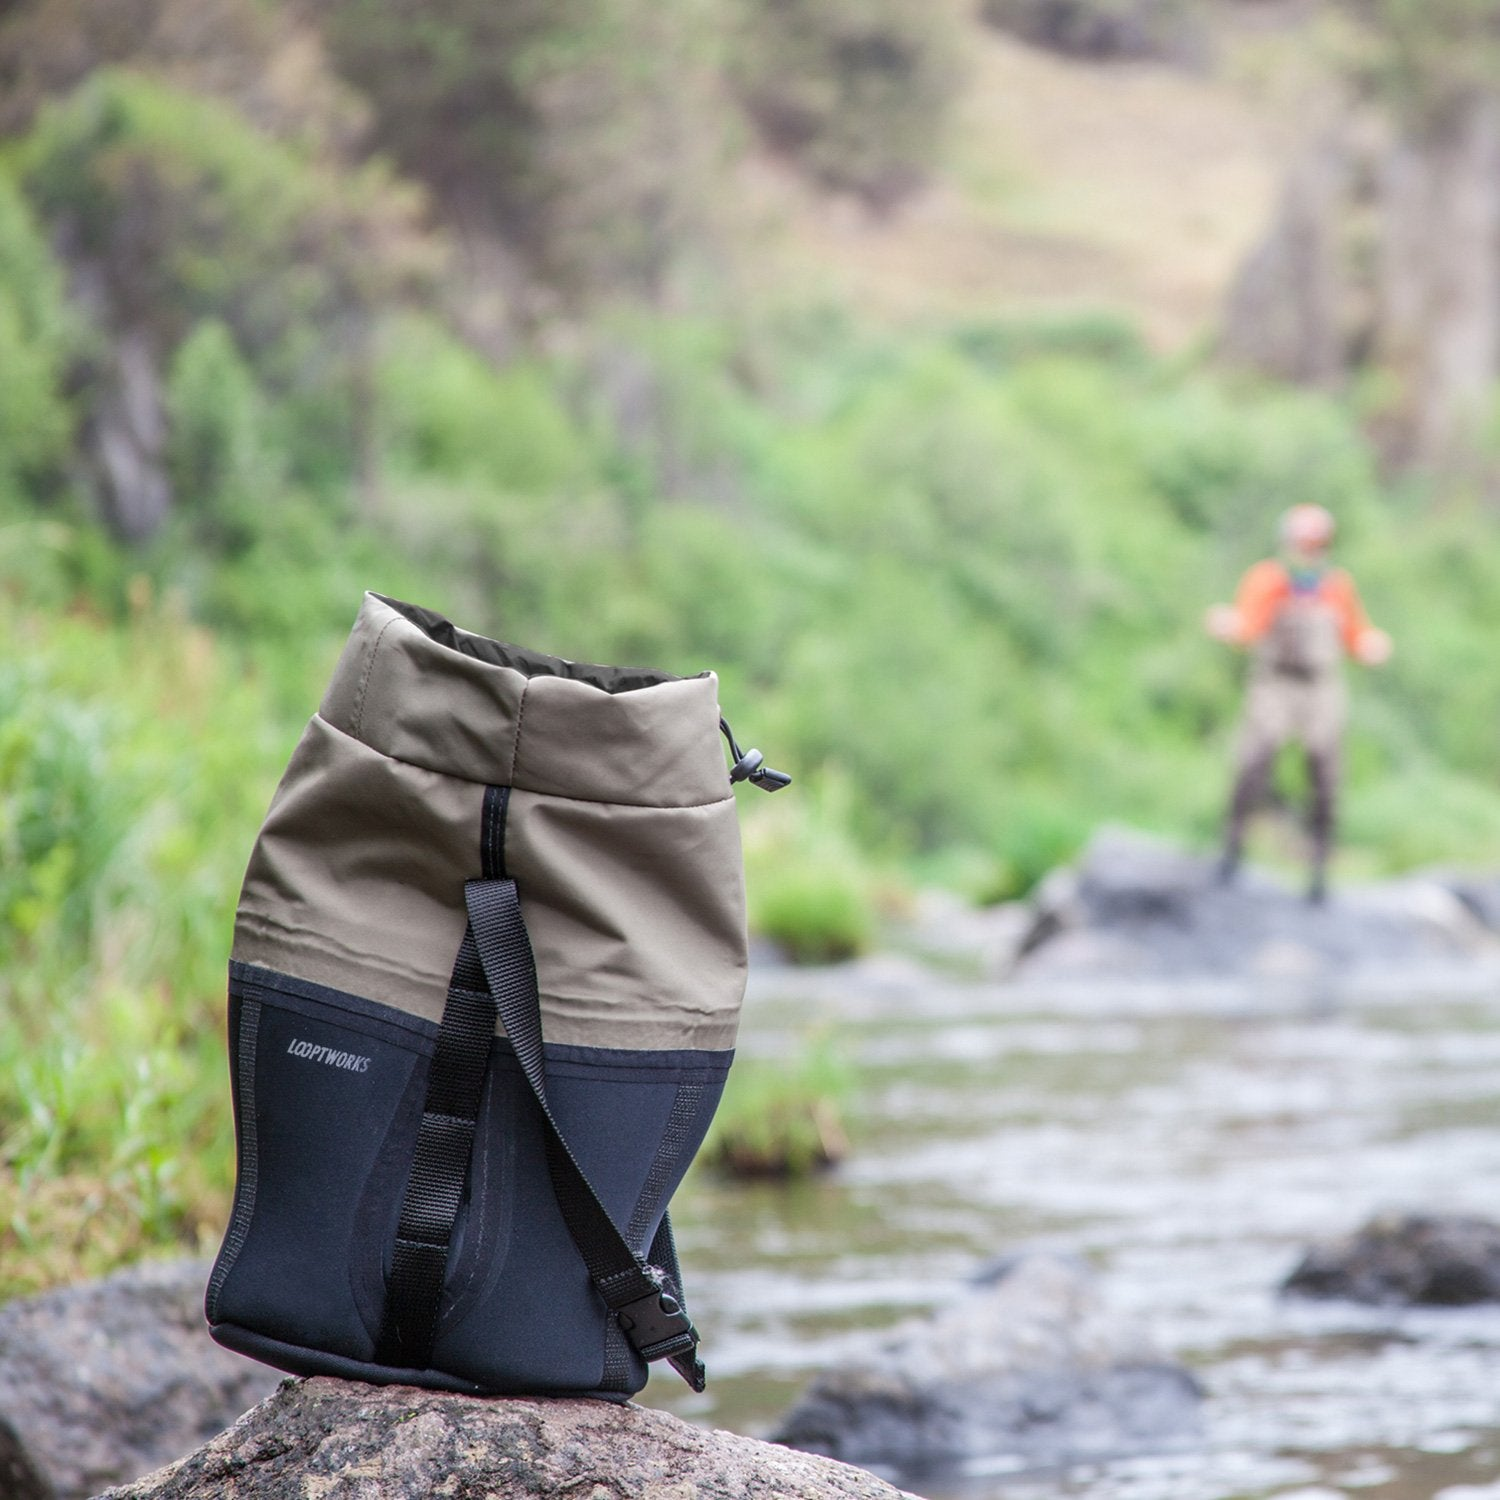 Our upcycled neoprene and merino wool dual wine carrier is ready for any adventure